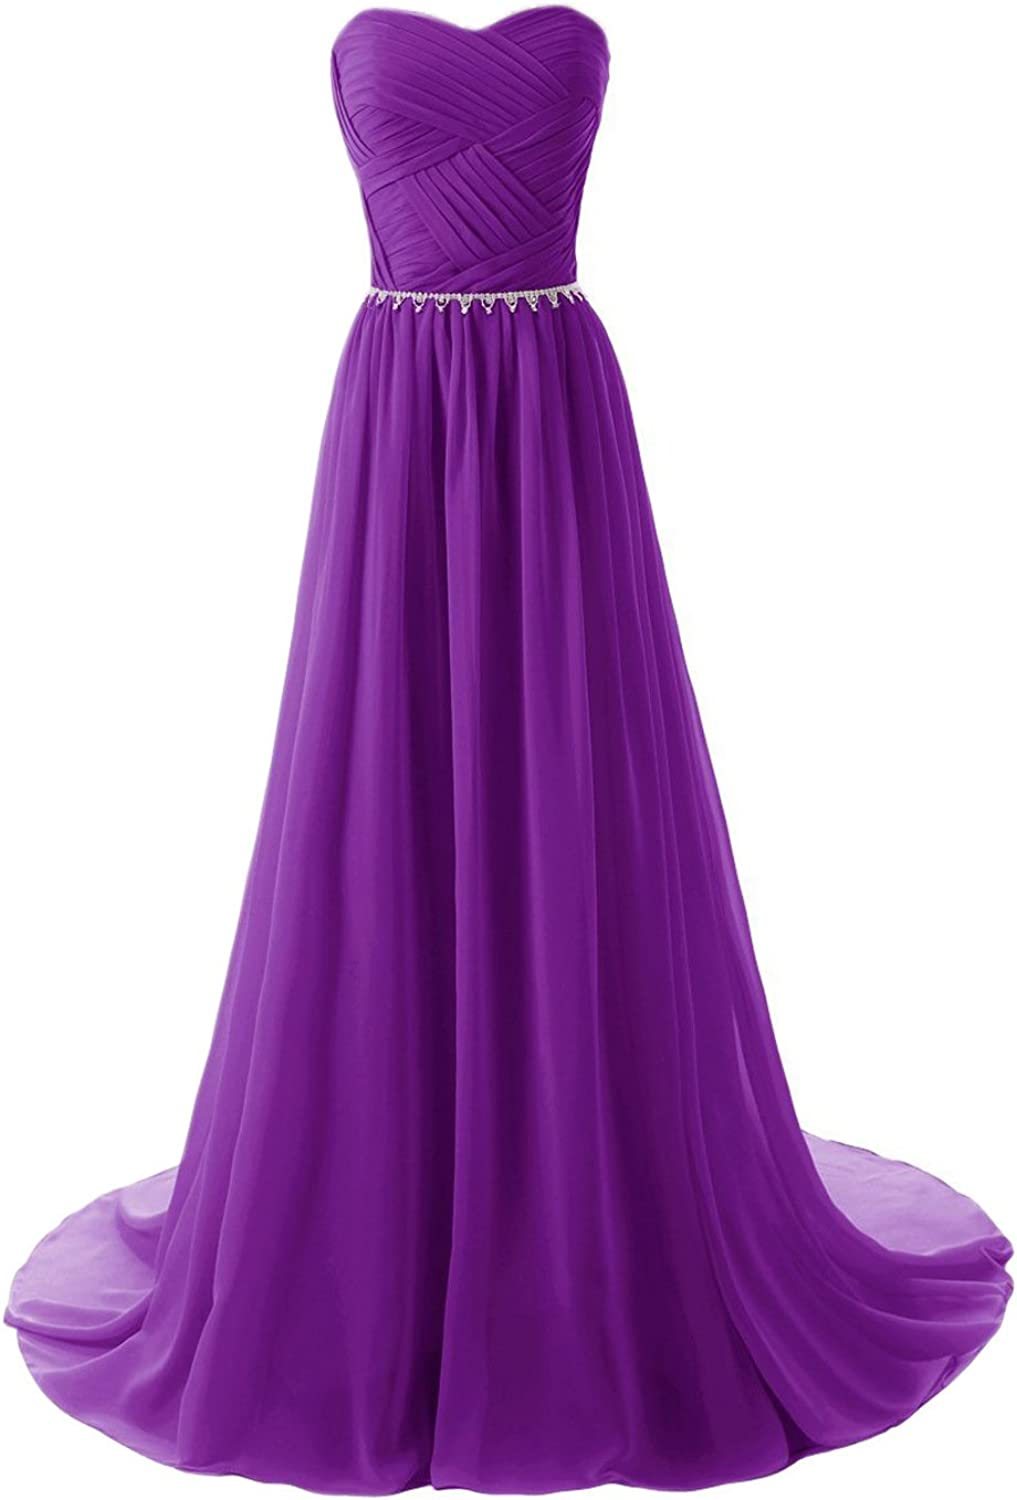 JoyVany Women Sweetheart Long Bridesmaid Evening Prom Dresses 2018 Formal Gowns Grape Size 10